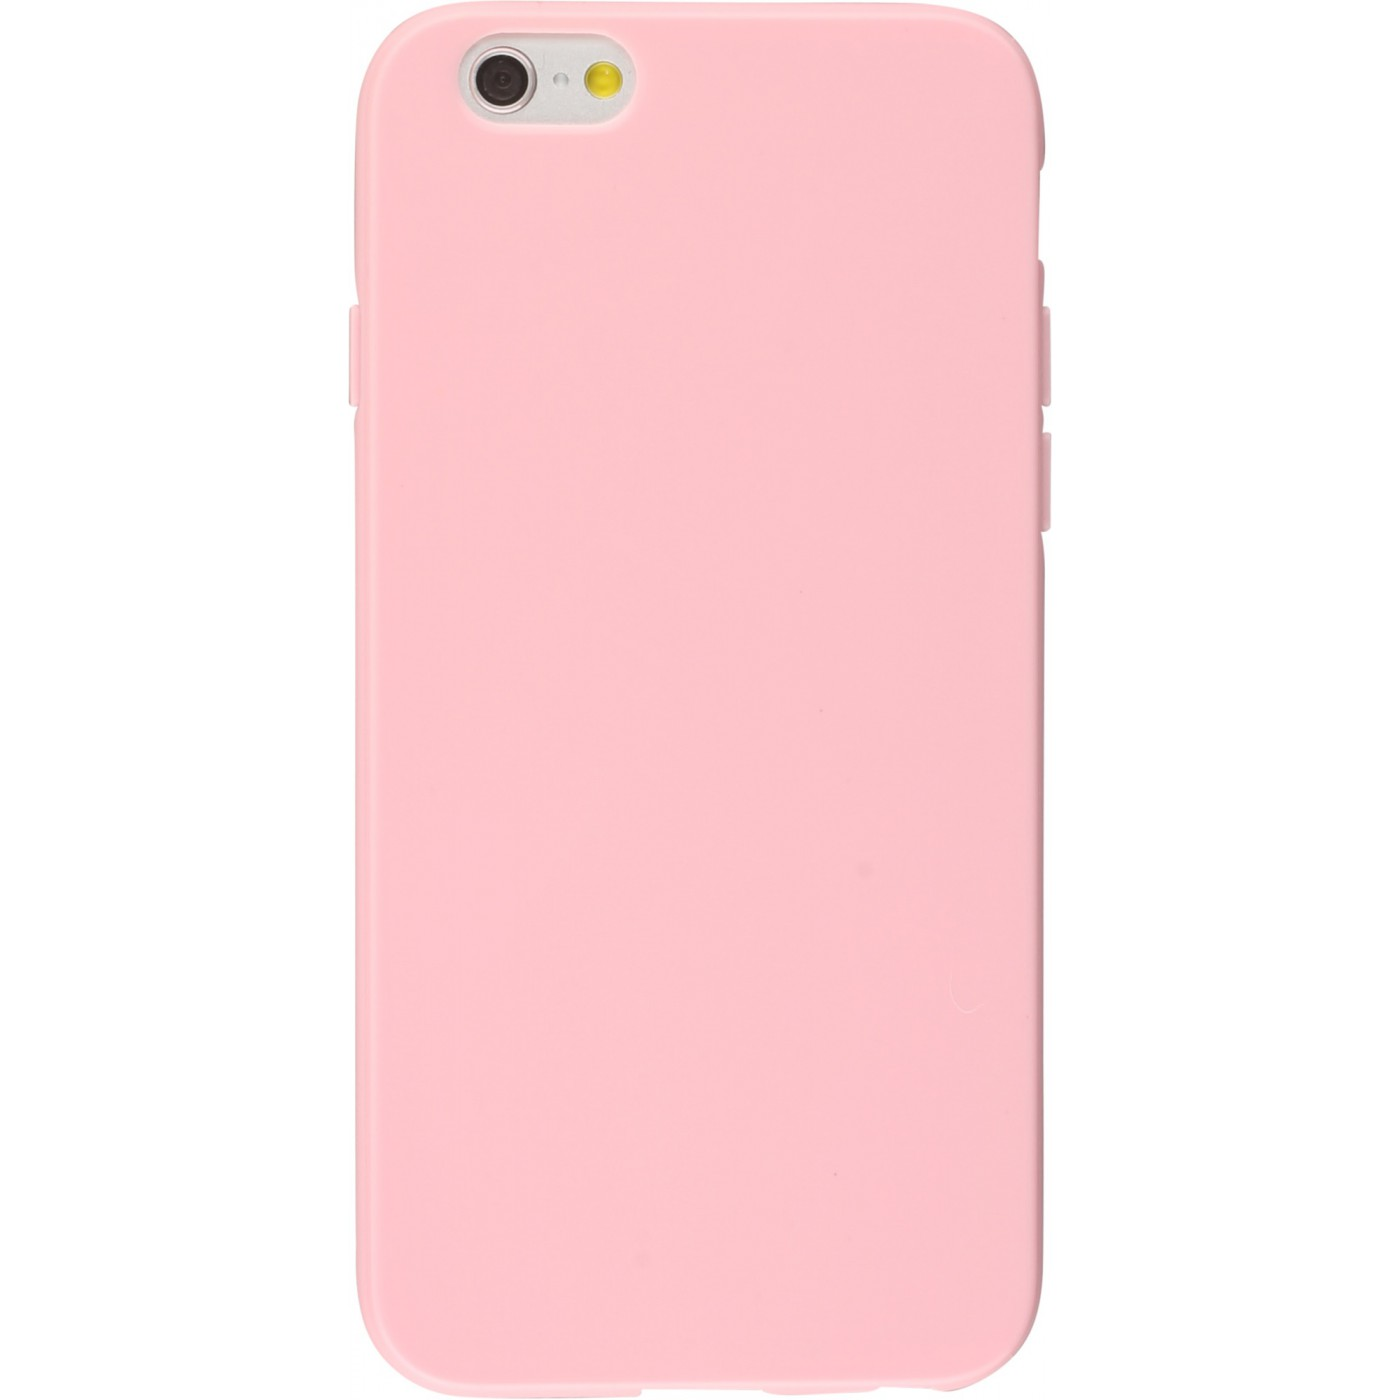 Housse iphone 6 6s gel rose clair for Housse iphone 6